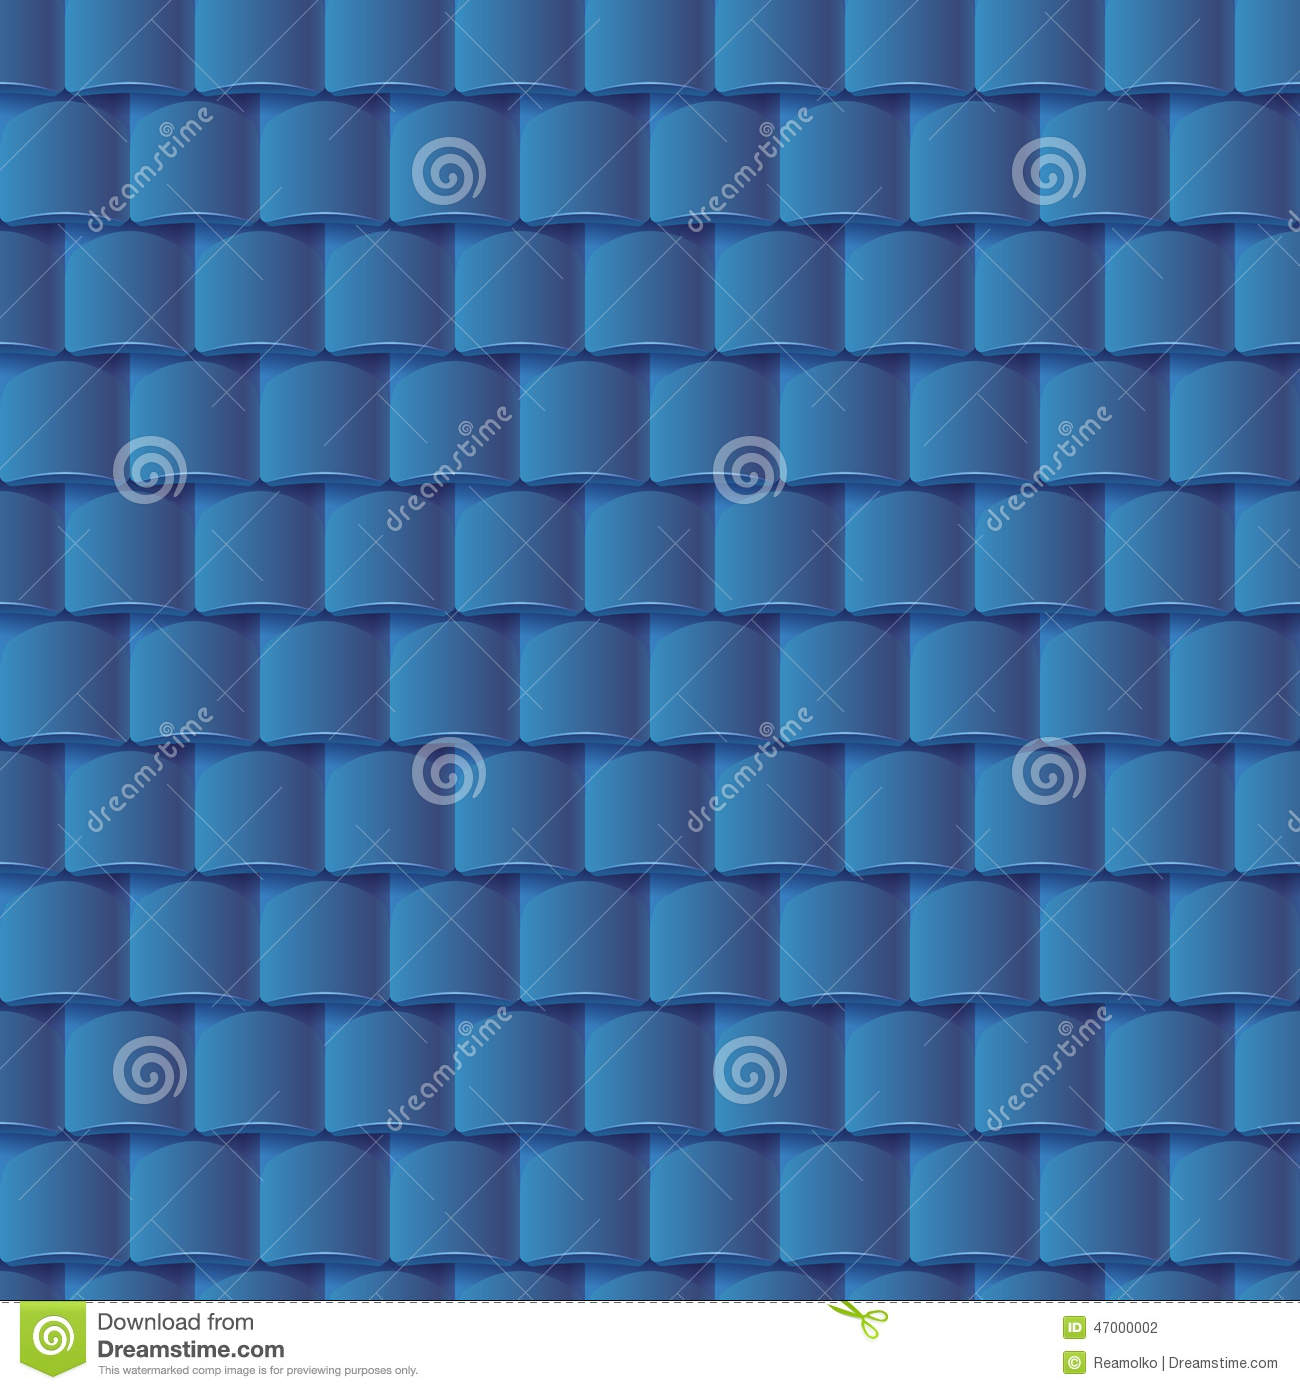 Seamless Roof Tiles Pattern Blue Texture Stock Vector